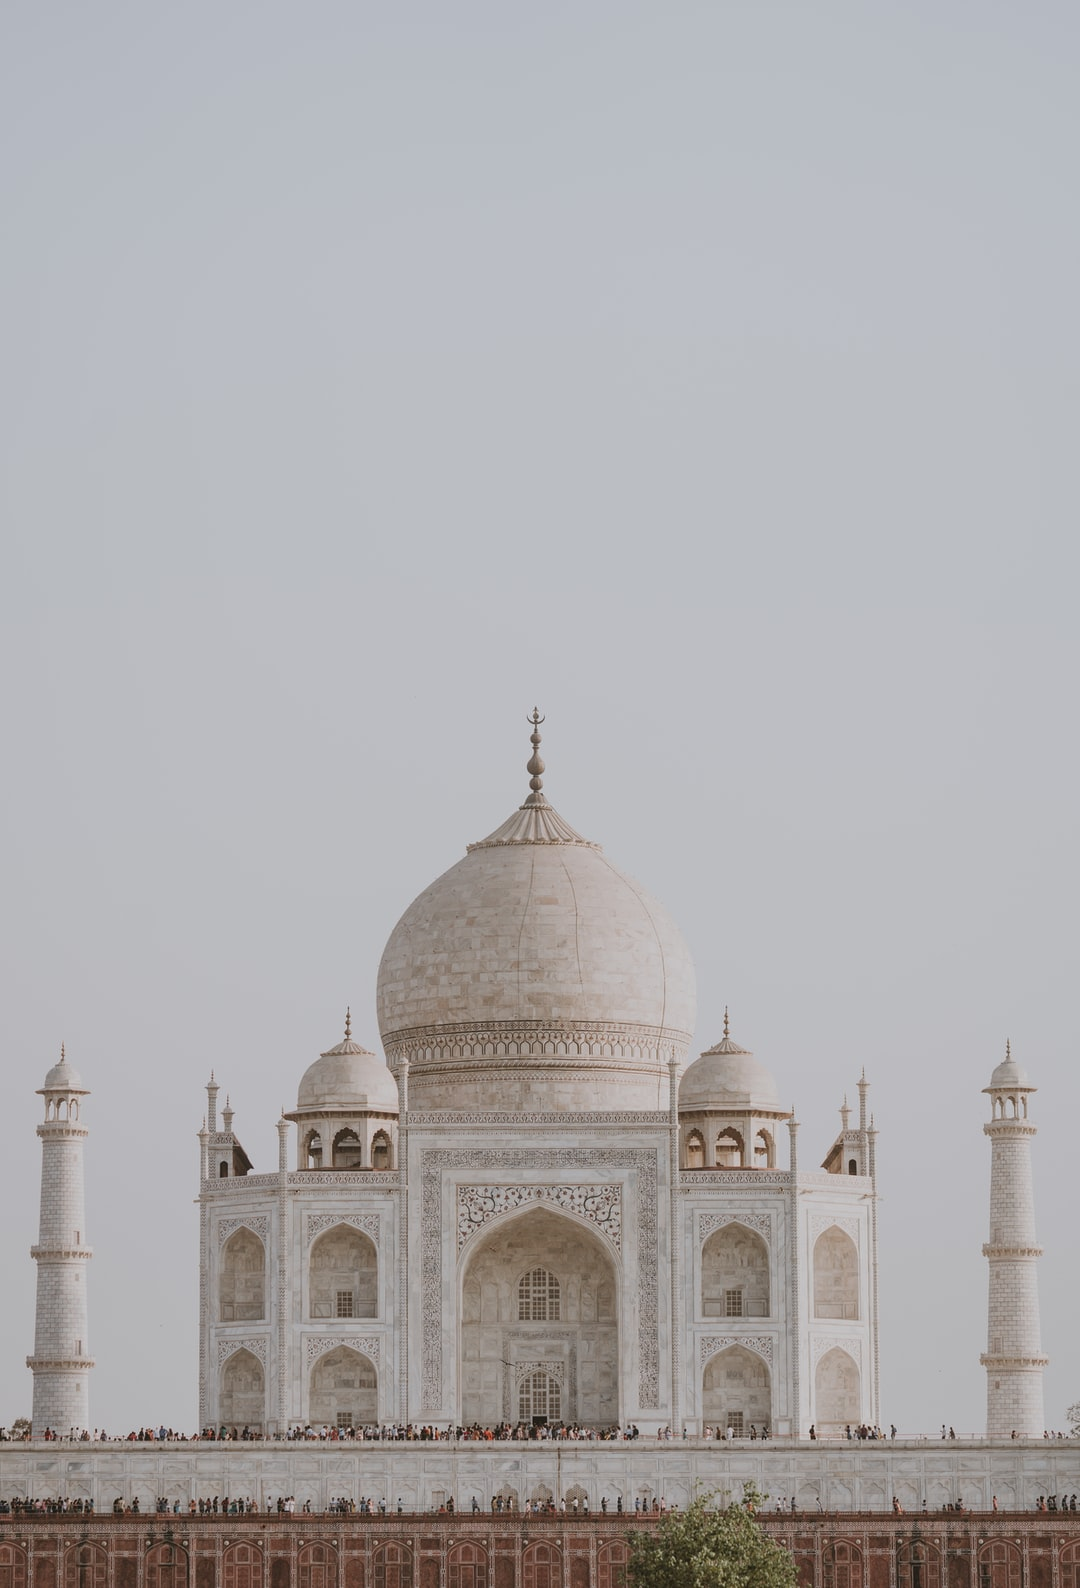 This is a view of the Taj Mahal from Mehtab Bagh,  a charbagh complex in Agra, North India.  Mehtab Bagh lies north of the Taj Mahal complex and the Agra Fort on the opposite side of the Yamuna River, in the flood plains. Taken on our recent family holiday to India 🇮🇳